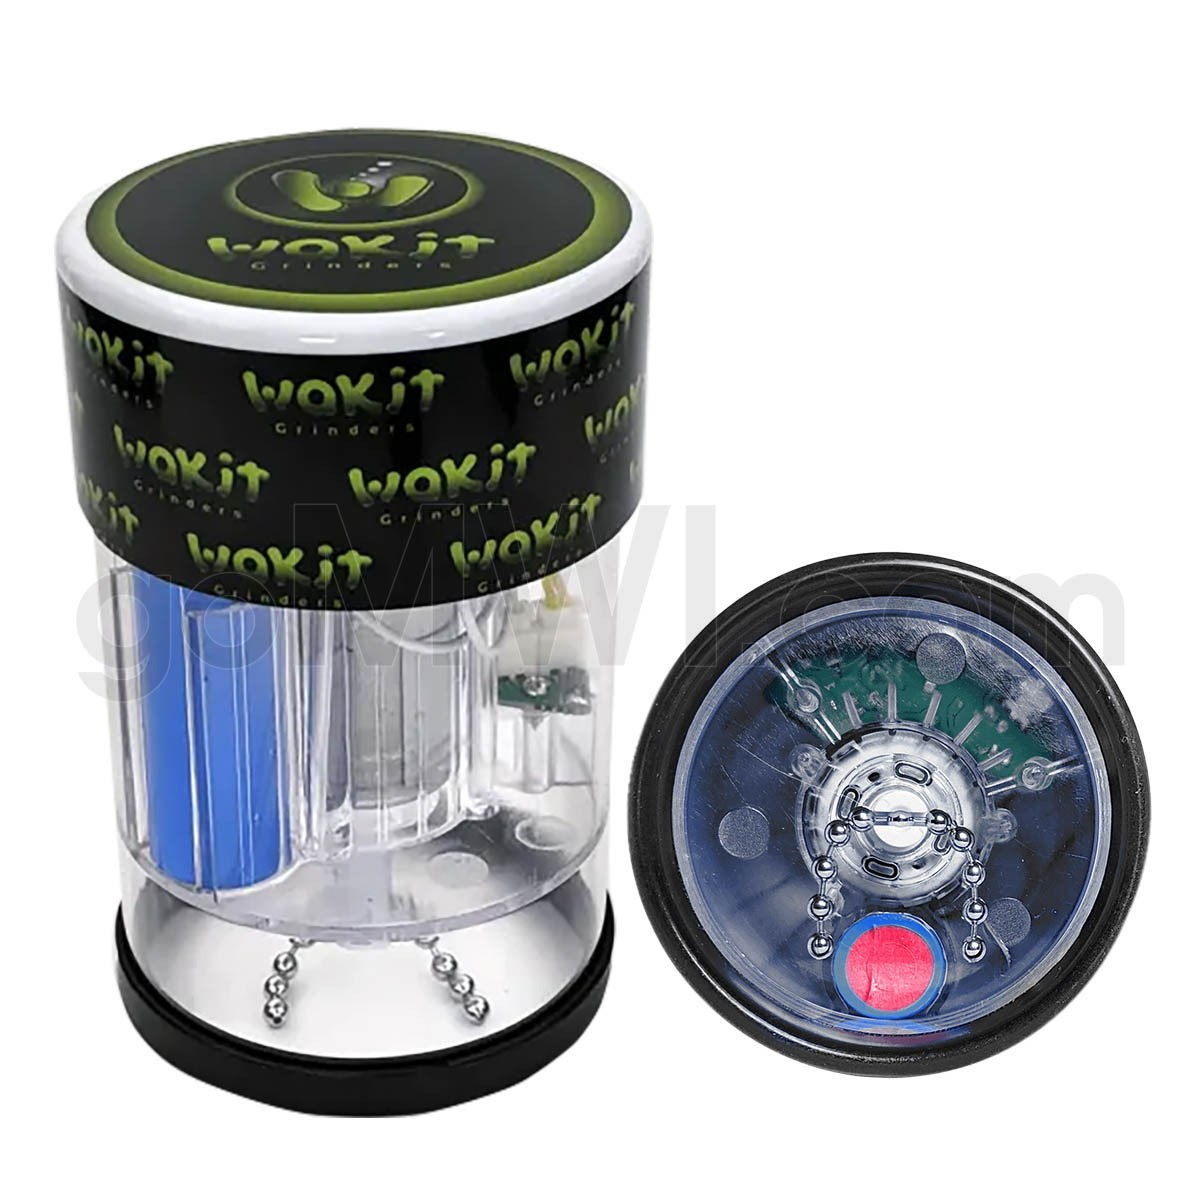 WAKIT ELECTRIC GRINDERS 0317